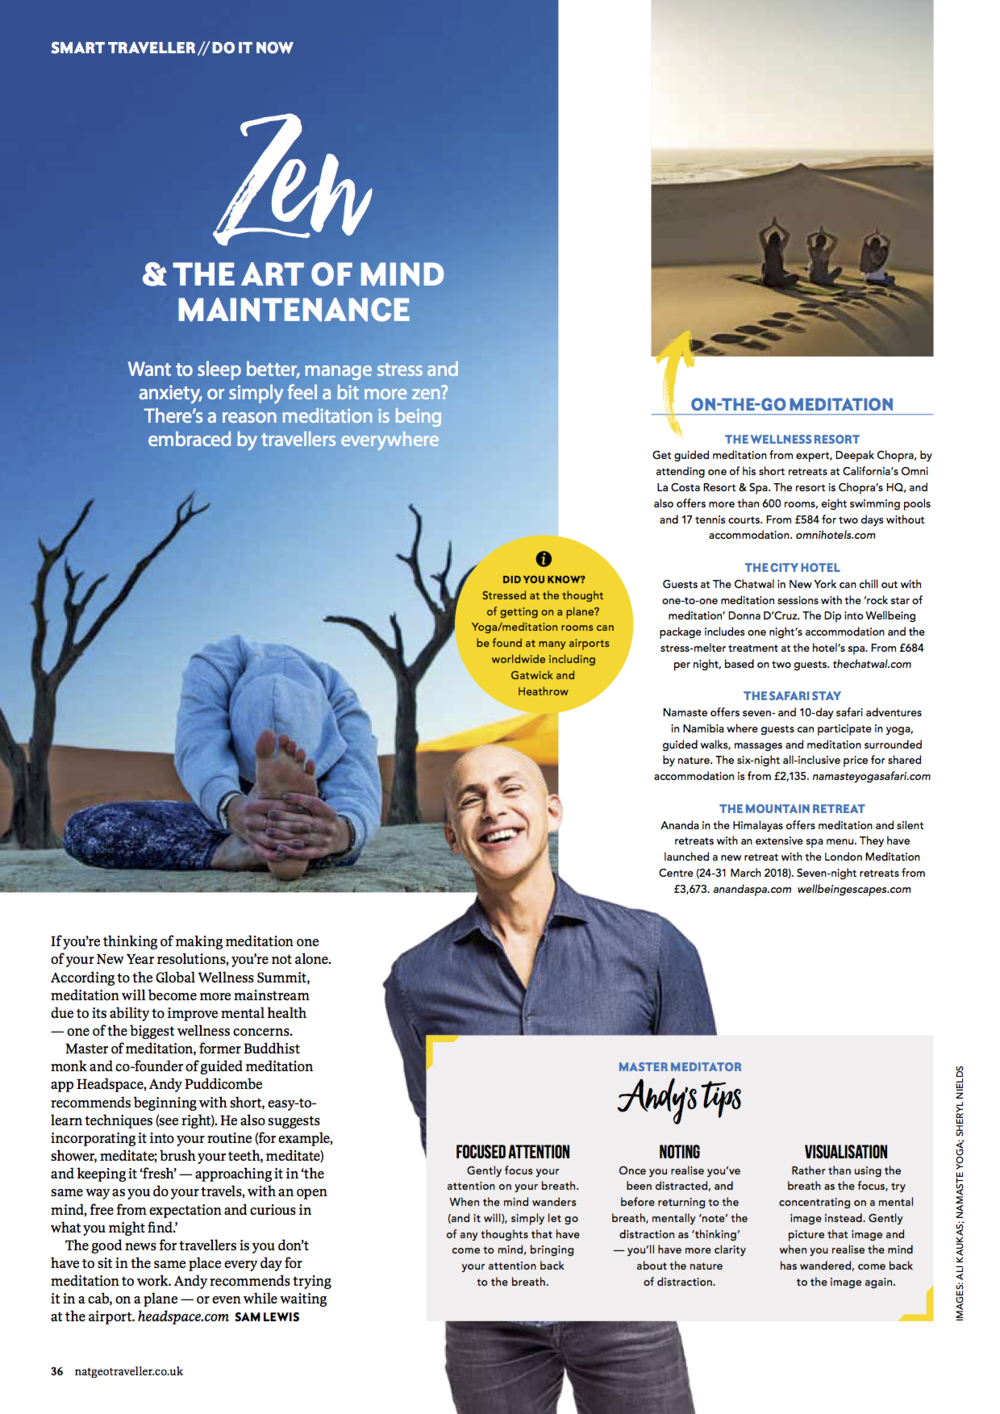 Zen & the art of Mind Maintenance -National Geographic Traveller  Writer: Sam Lewis who is the writer   http://www.samanthalewis.co.uk/